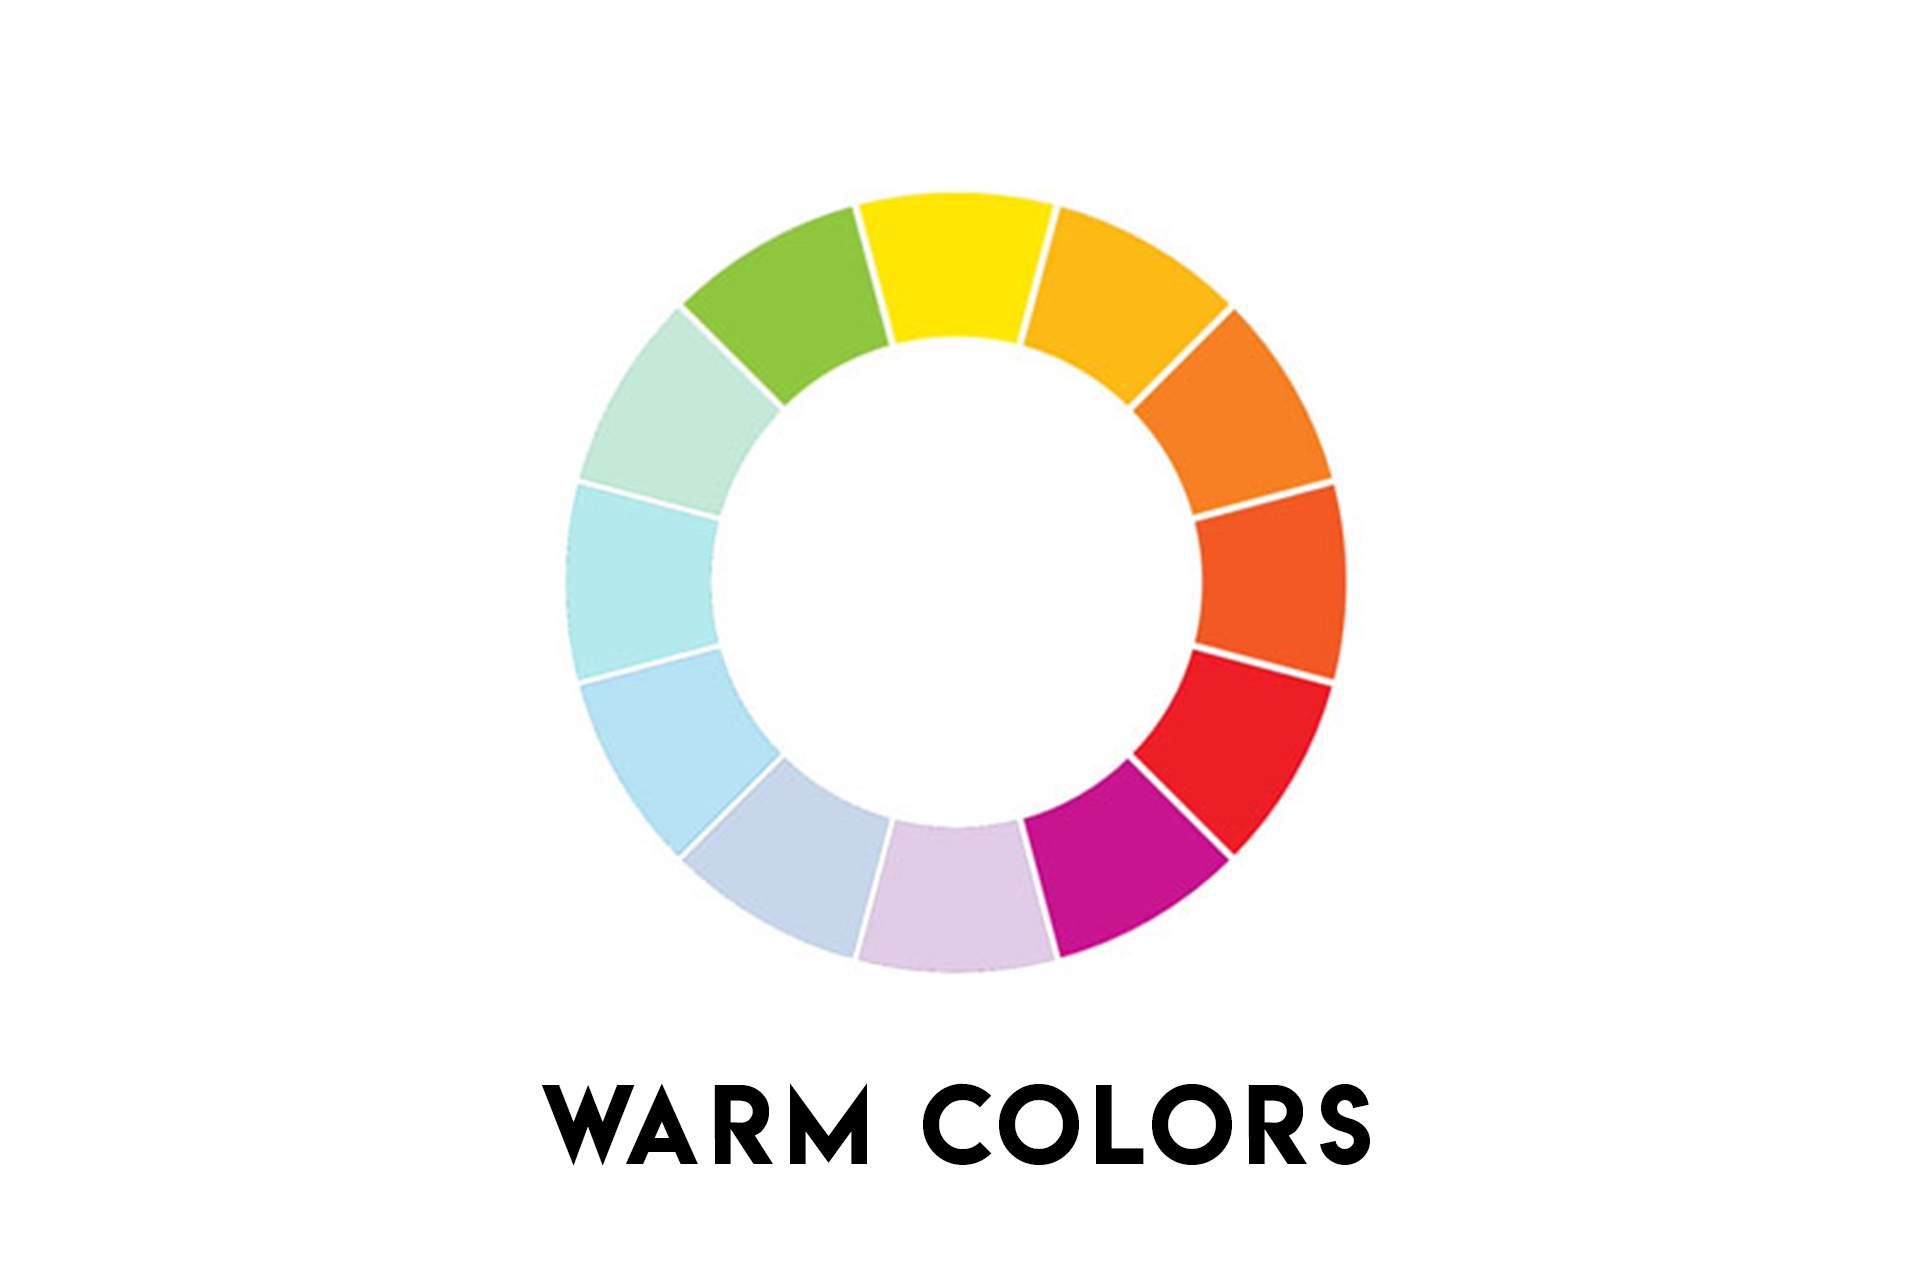 What is warm colors Graphic Design Most used terms about color in design